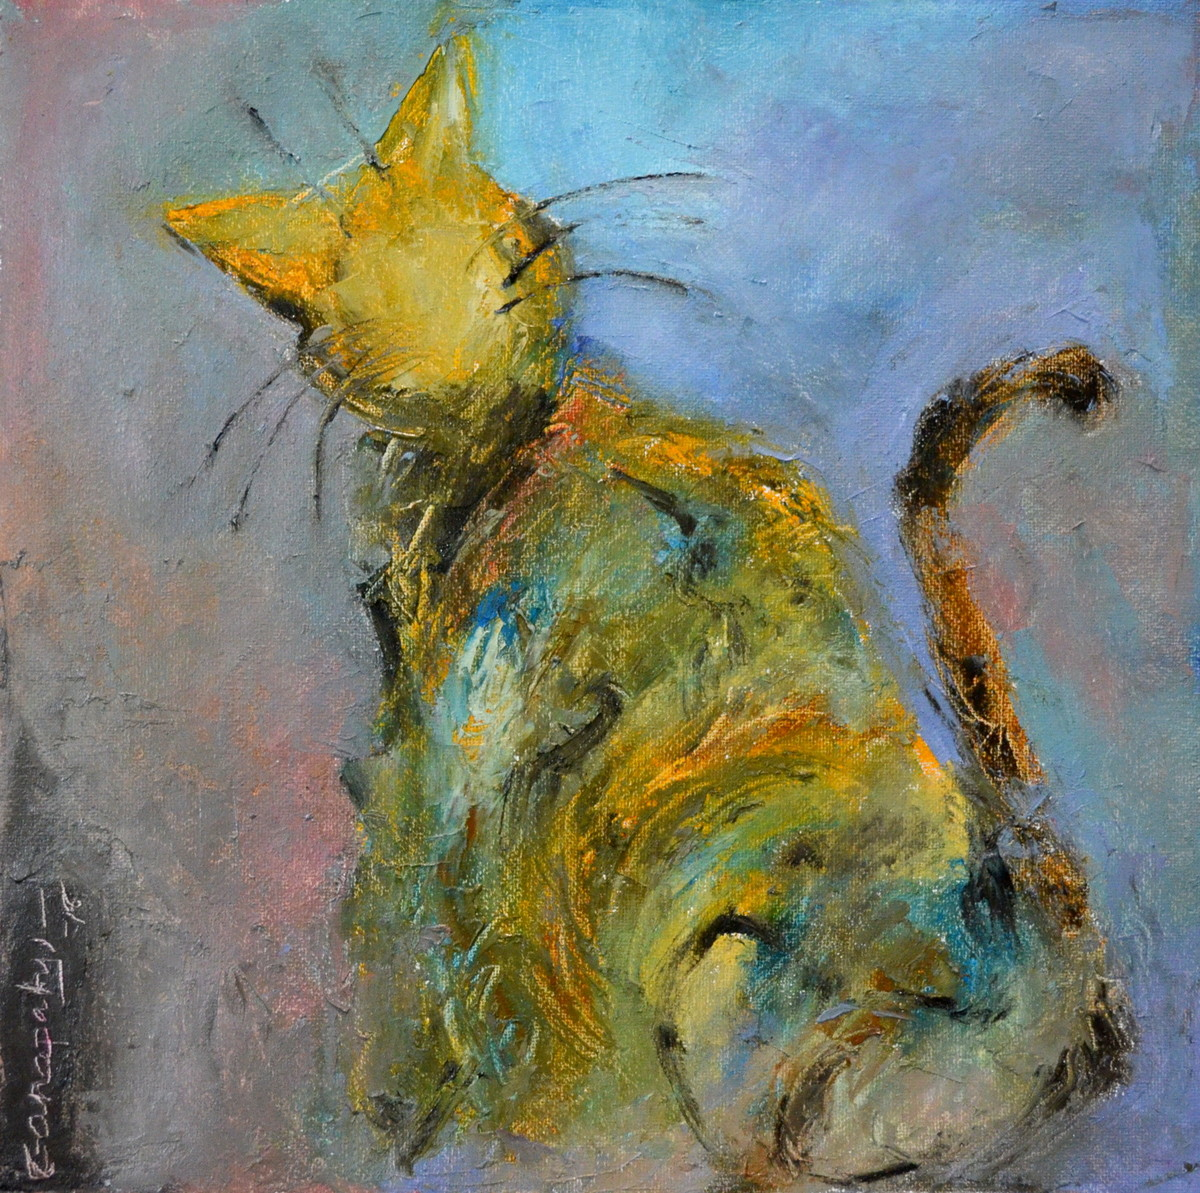 Cat 120 by Ganapathy Subramaniam, Impressionism Painting, Oil on Paper, Green color